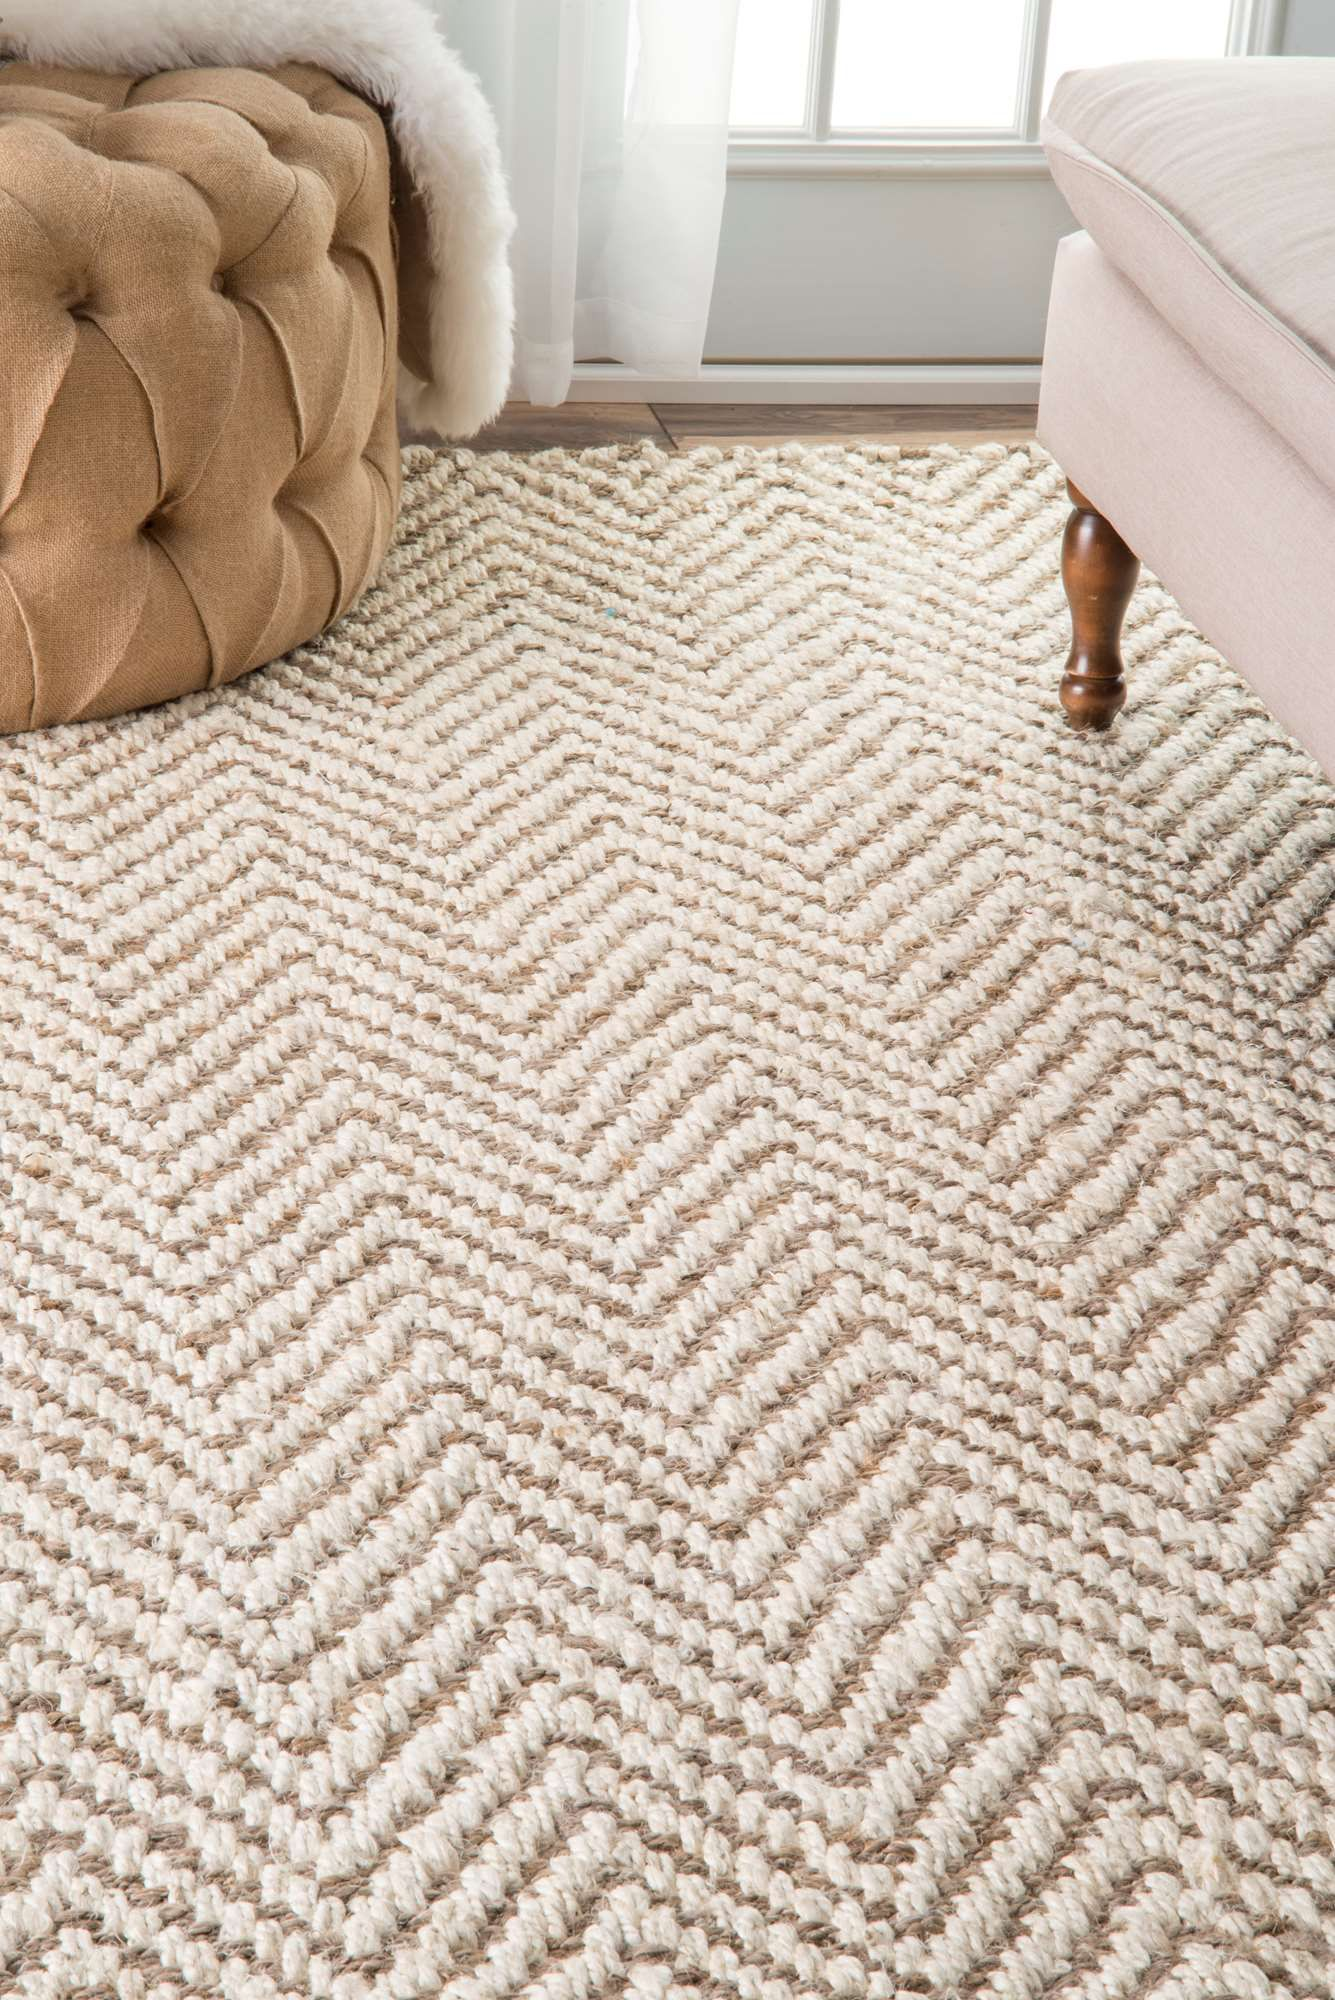 Kiwawa03 handwoven jute jagged chevron rug next house pinterest chevron rugs jute and How to buy an area rug for living room